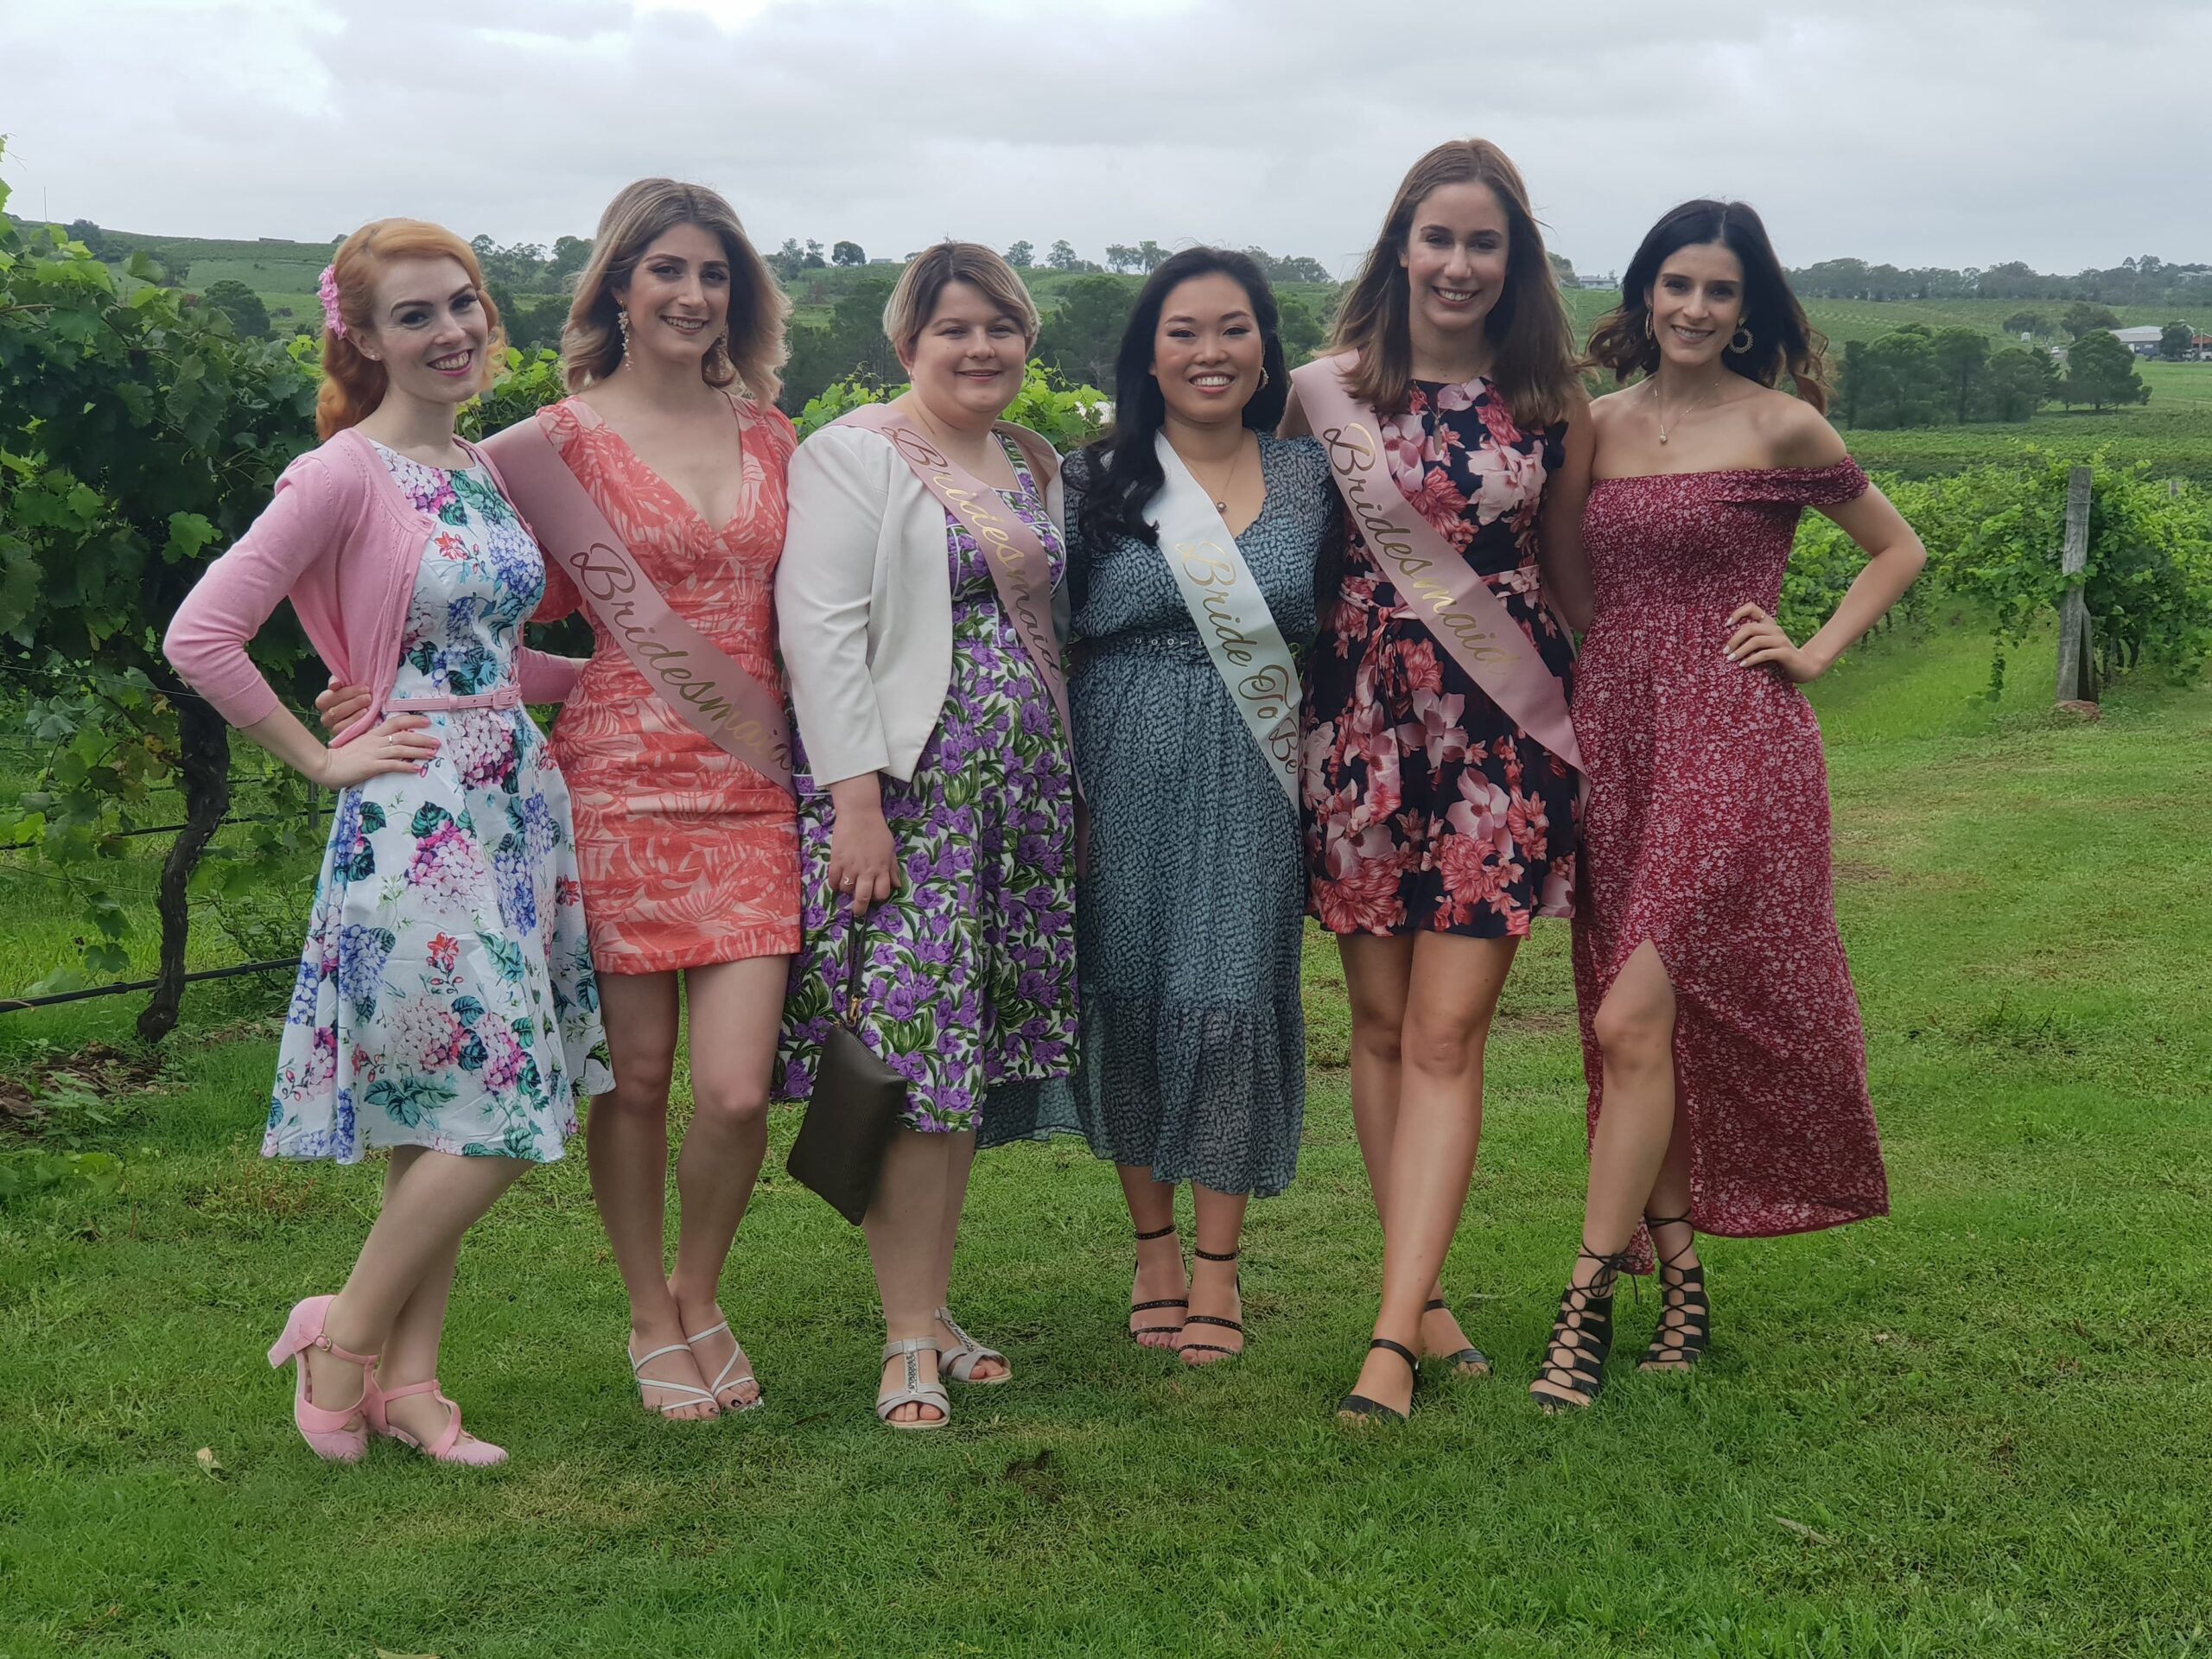 Hens Weekend with the girls at Hunter Valley, 6 girls standing in front of vineyard